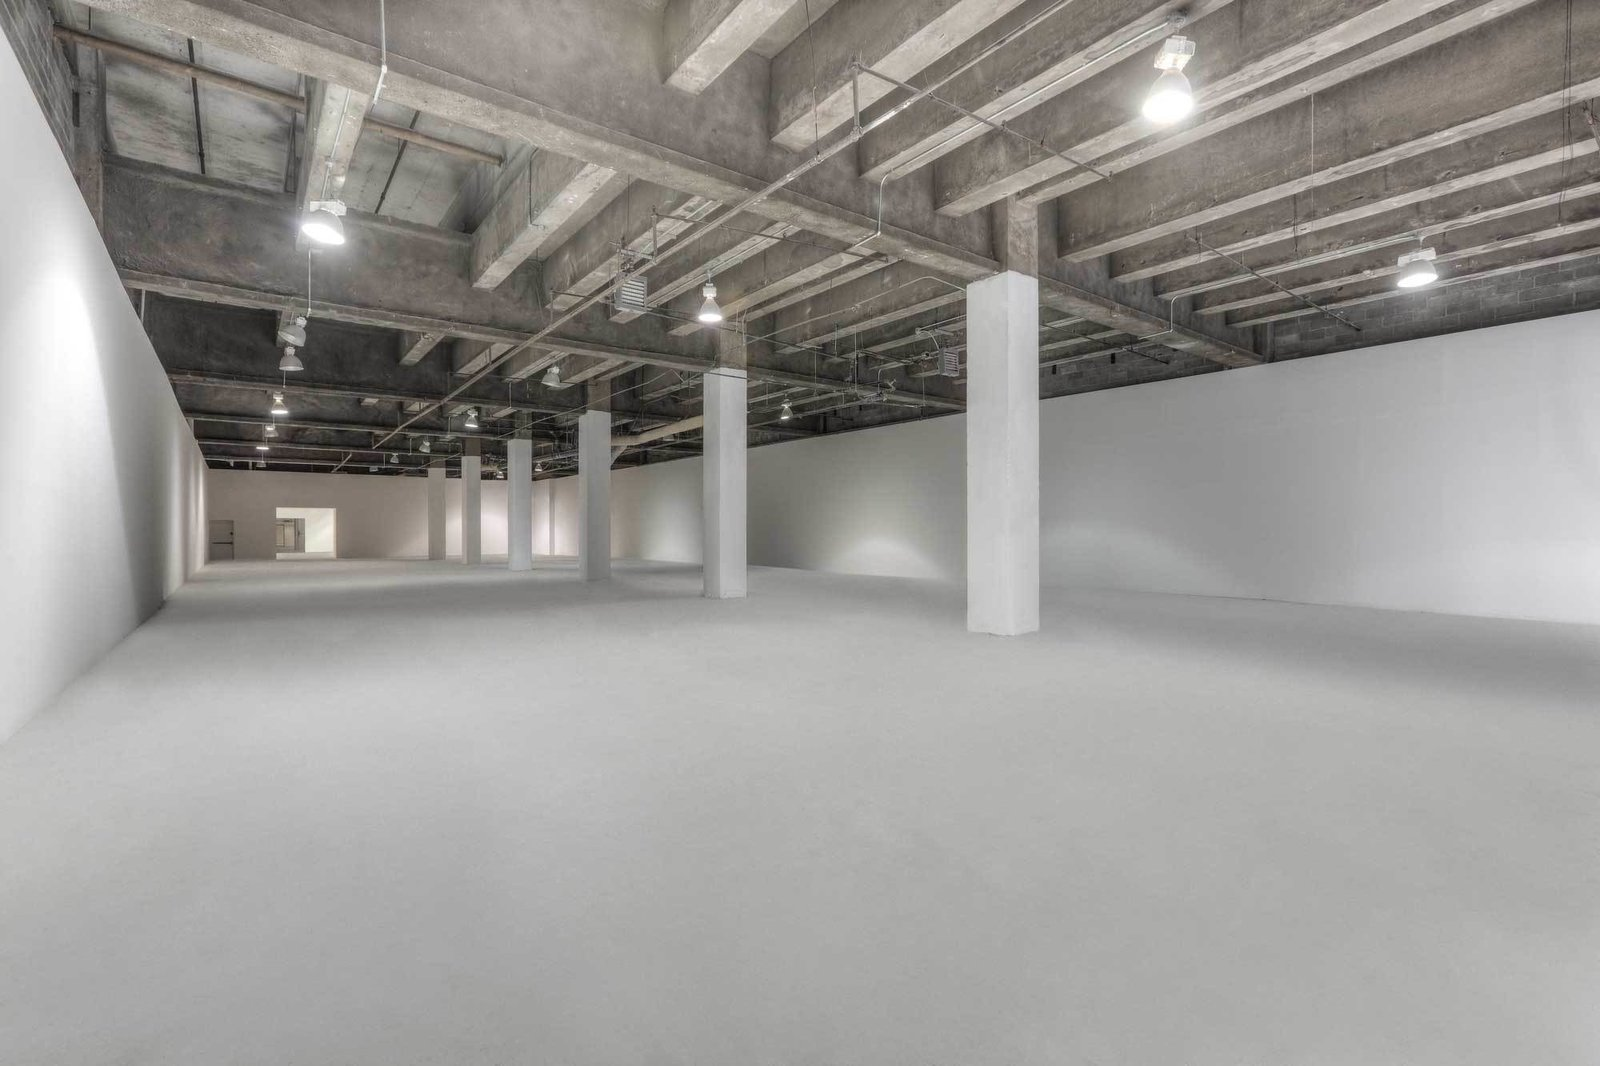 The Venue: Skylight Clarkson Sq. Located in West SoHo, Skylight Clarkson Sq is the crown jewel of raw venues in Manhattan. The sprawling, 60,000 sq ft ground level space is one of the city's largest event floor plates. Skylight Clarkson Sq, which once served as the High Line's most southern terminal, is a versatile white studio which producers are limited only by their imaginations.  Reasons to Attend Dwell on Design New York This Weekend by Dwell